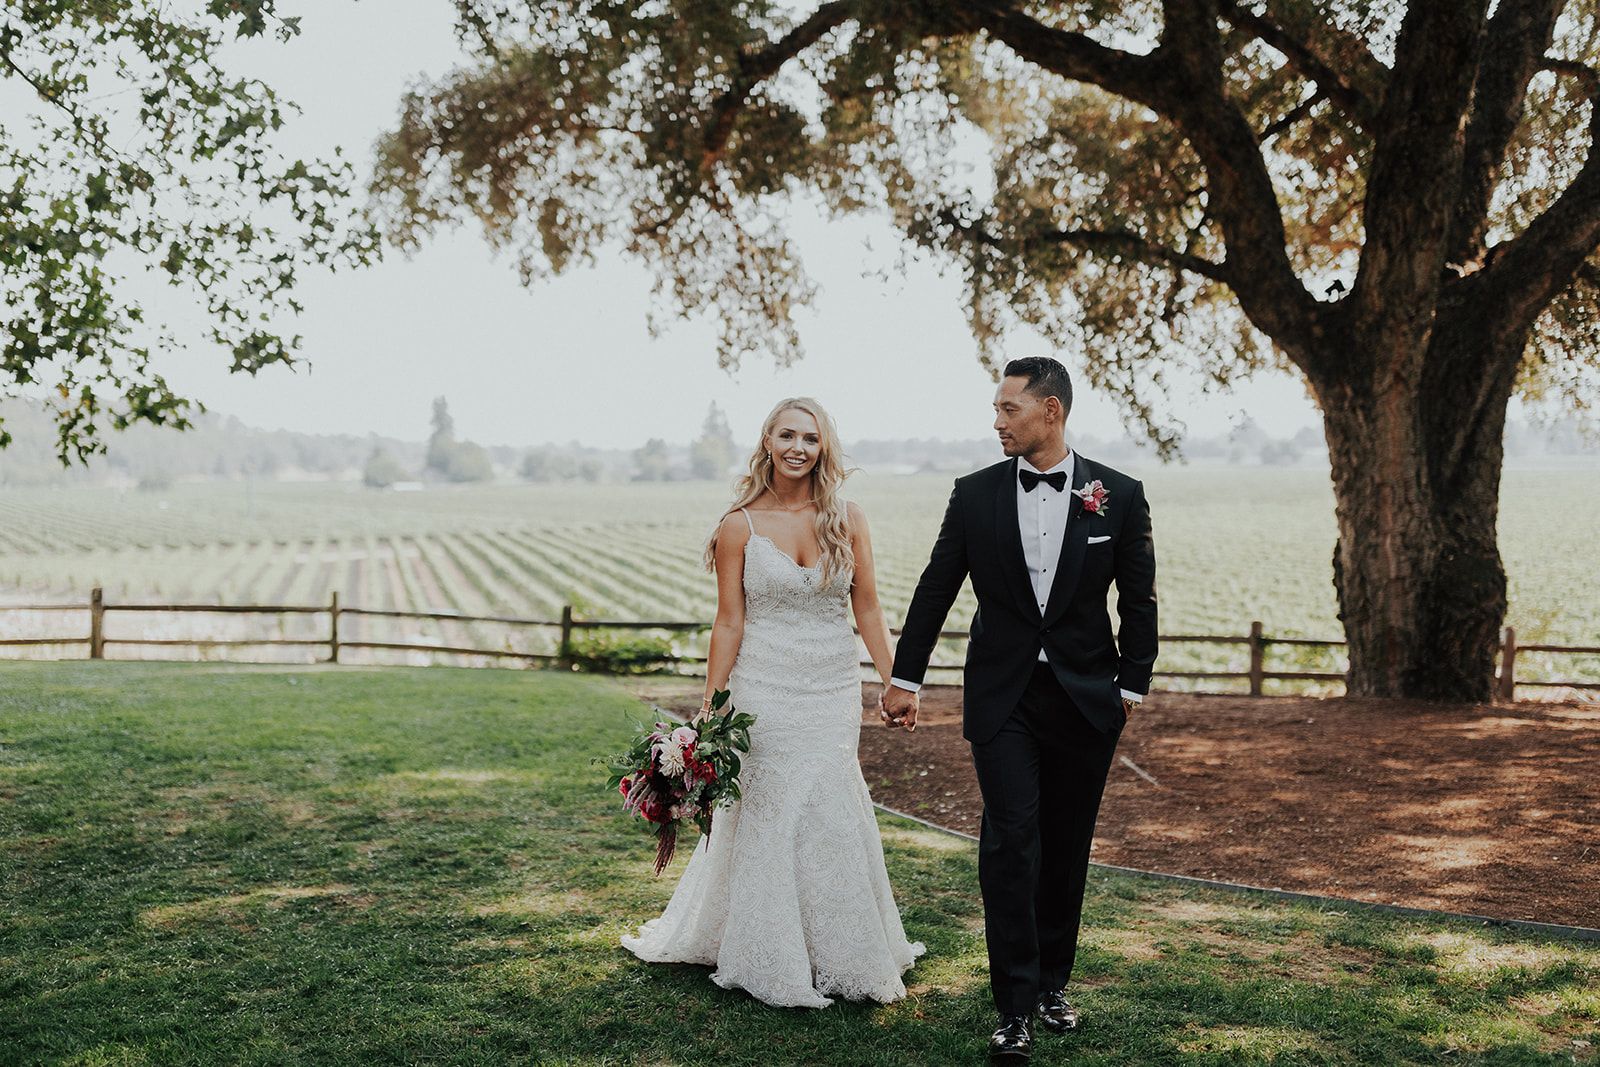 Colorful Summer wedding flowers by Venn Floral at Ru's Farm in Healdsburg photographed by Logan Cole.